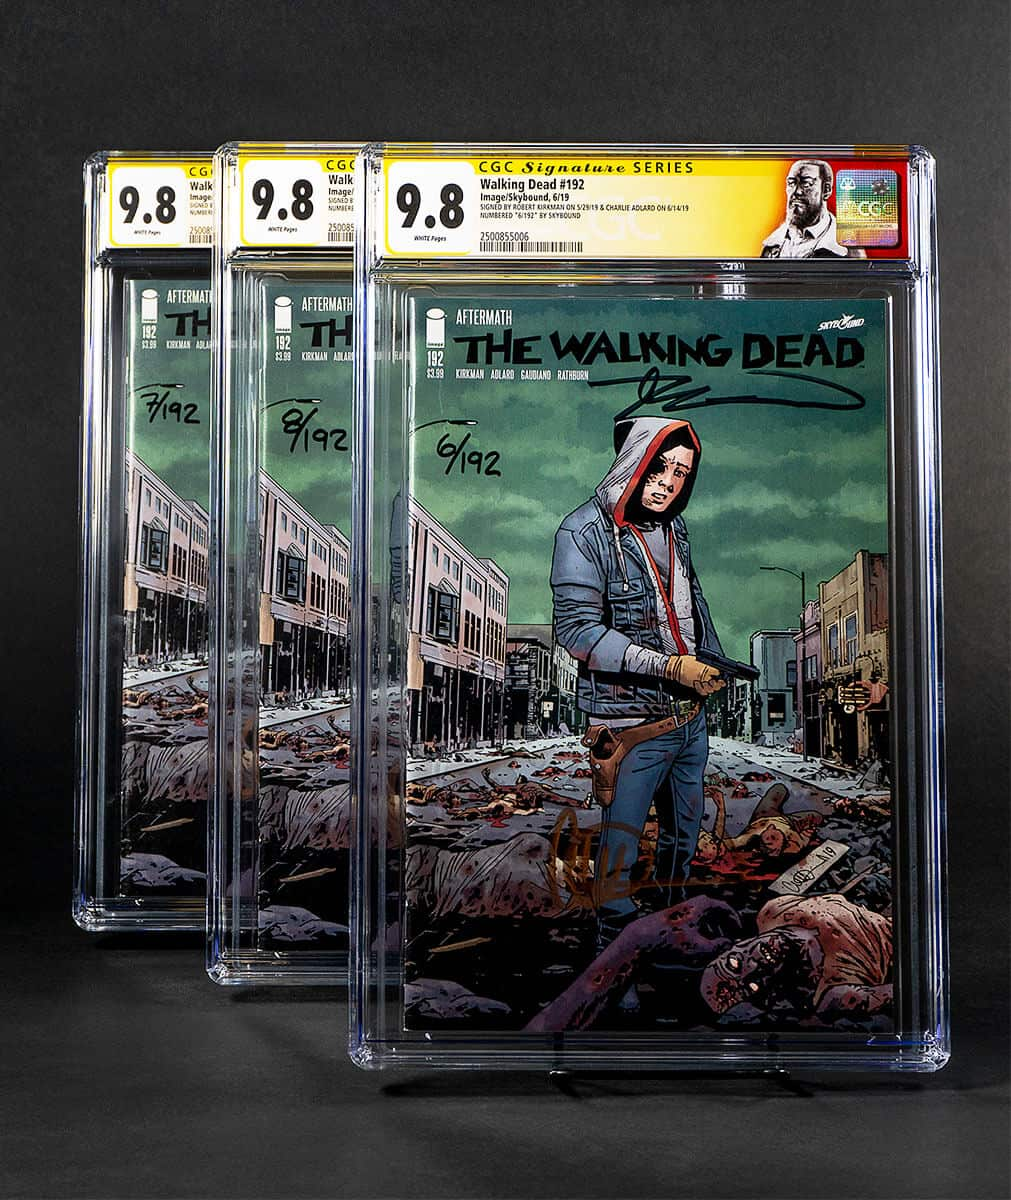 the walking dead issue 192 print 1 - Merchandise Dedicated To Rick Grimes From THE WALKING DEAD Will Be Sold At The San Diego Comic-Con